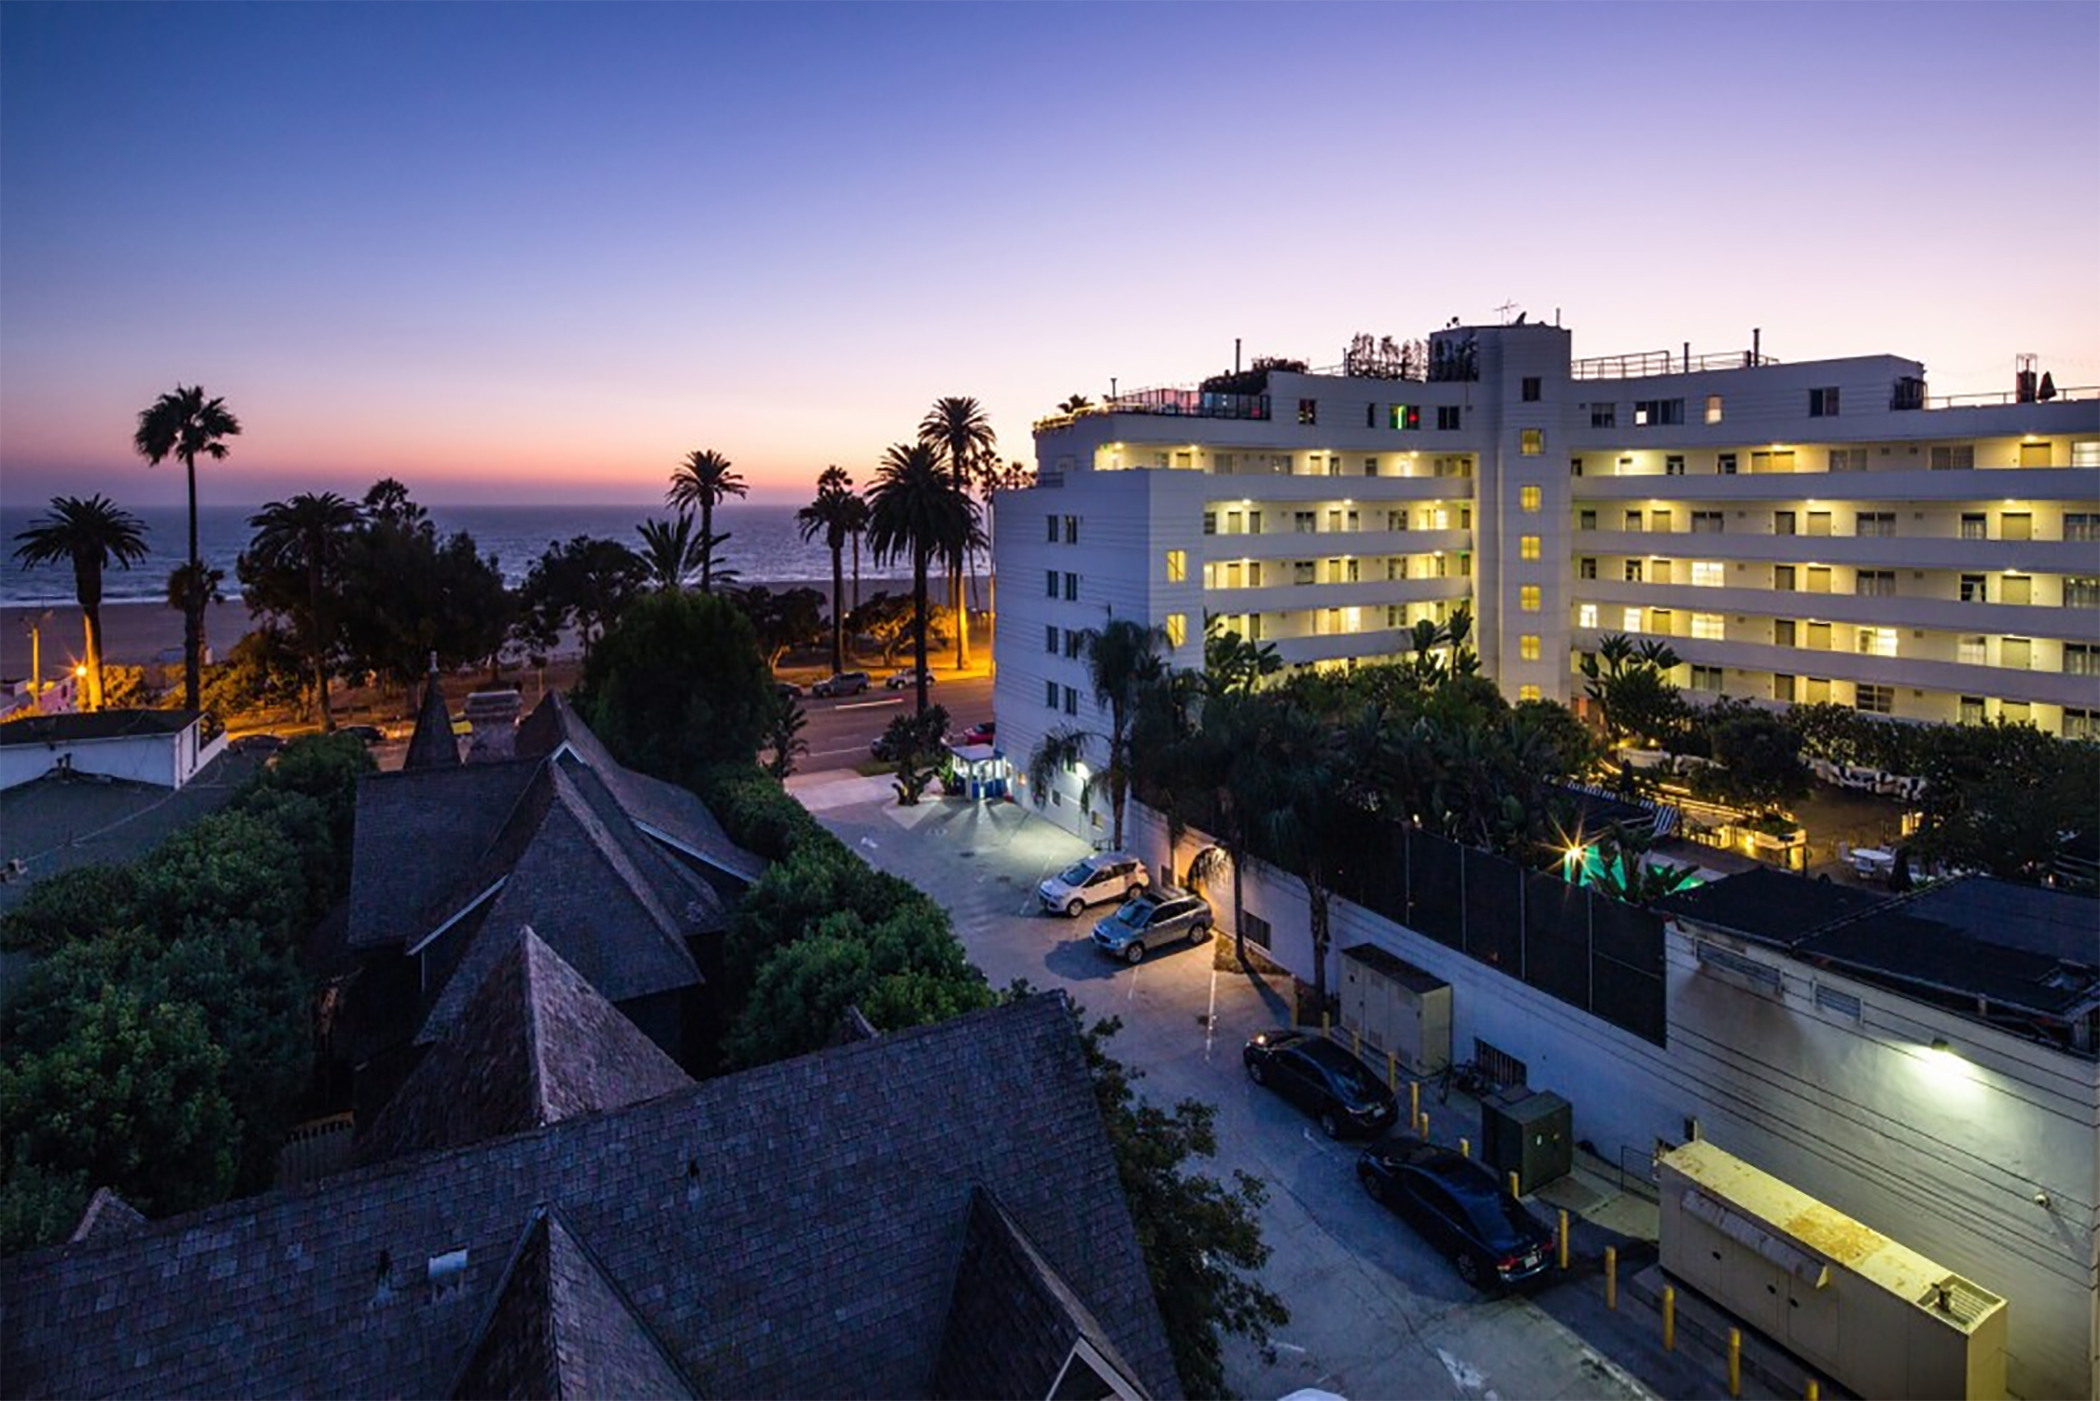 Apartments at the Chelsea Santa Monica in Santa Monica, California, rent for up to $10,000 per month. (CoStar)